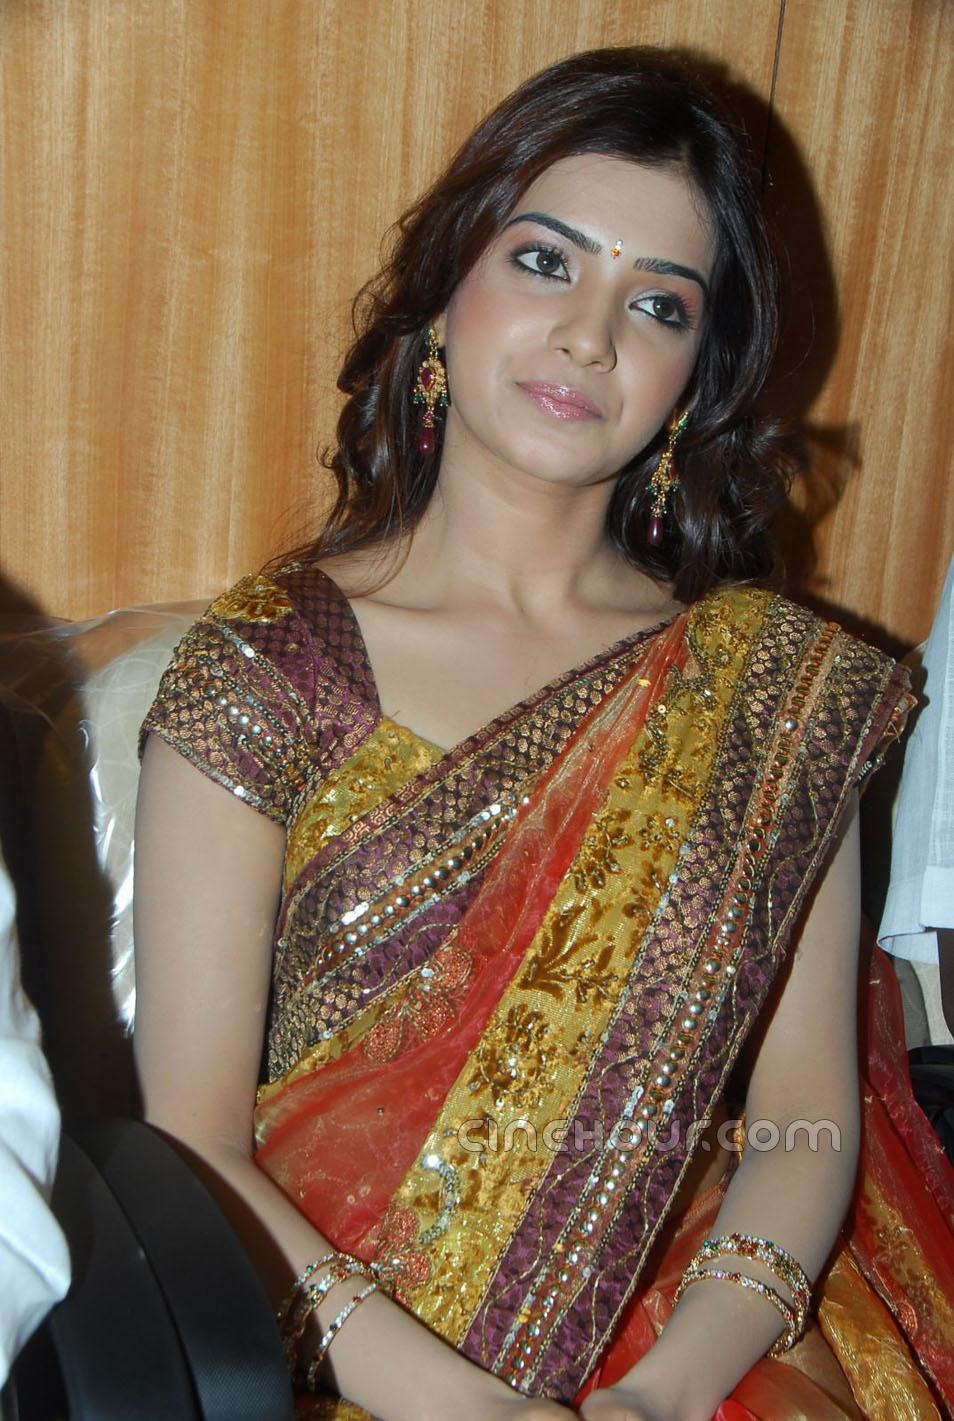 samantha in saree hd wallpapers for desktop.